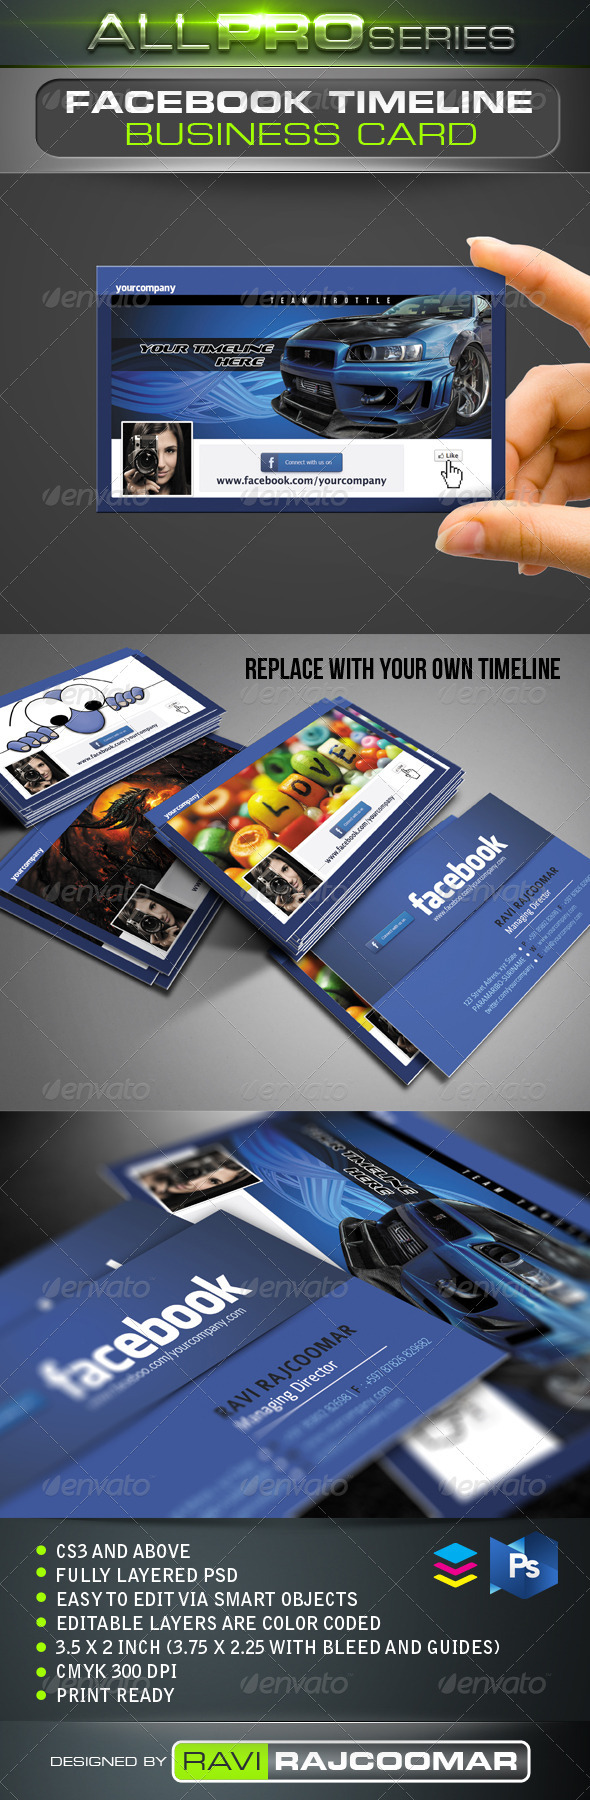 GraphicRiver FB Timeline Business Card 3522743